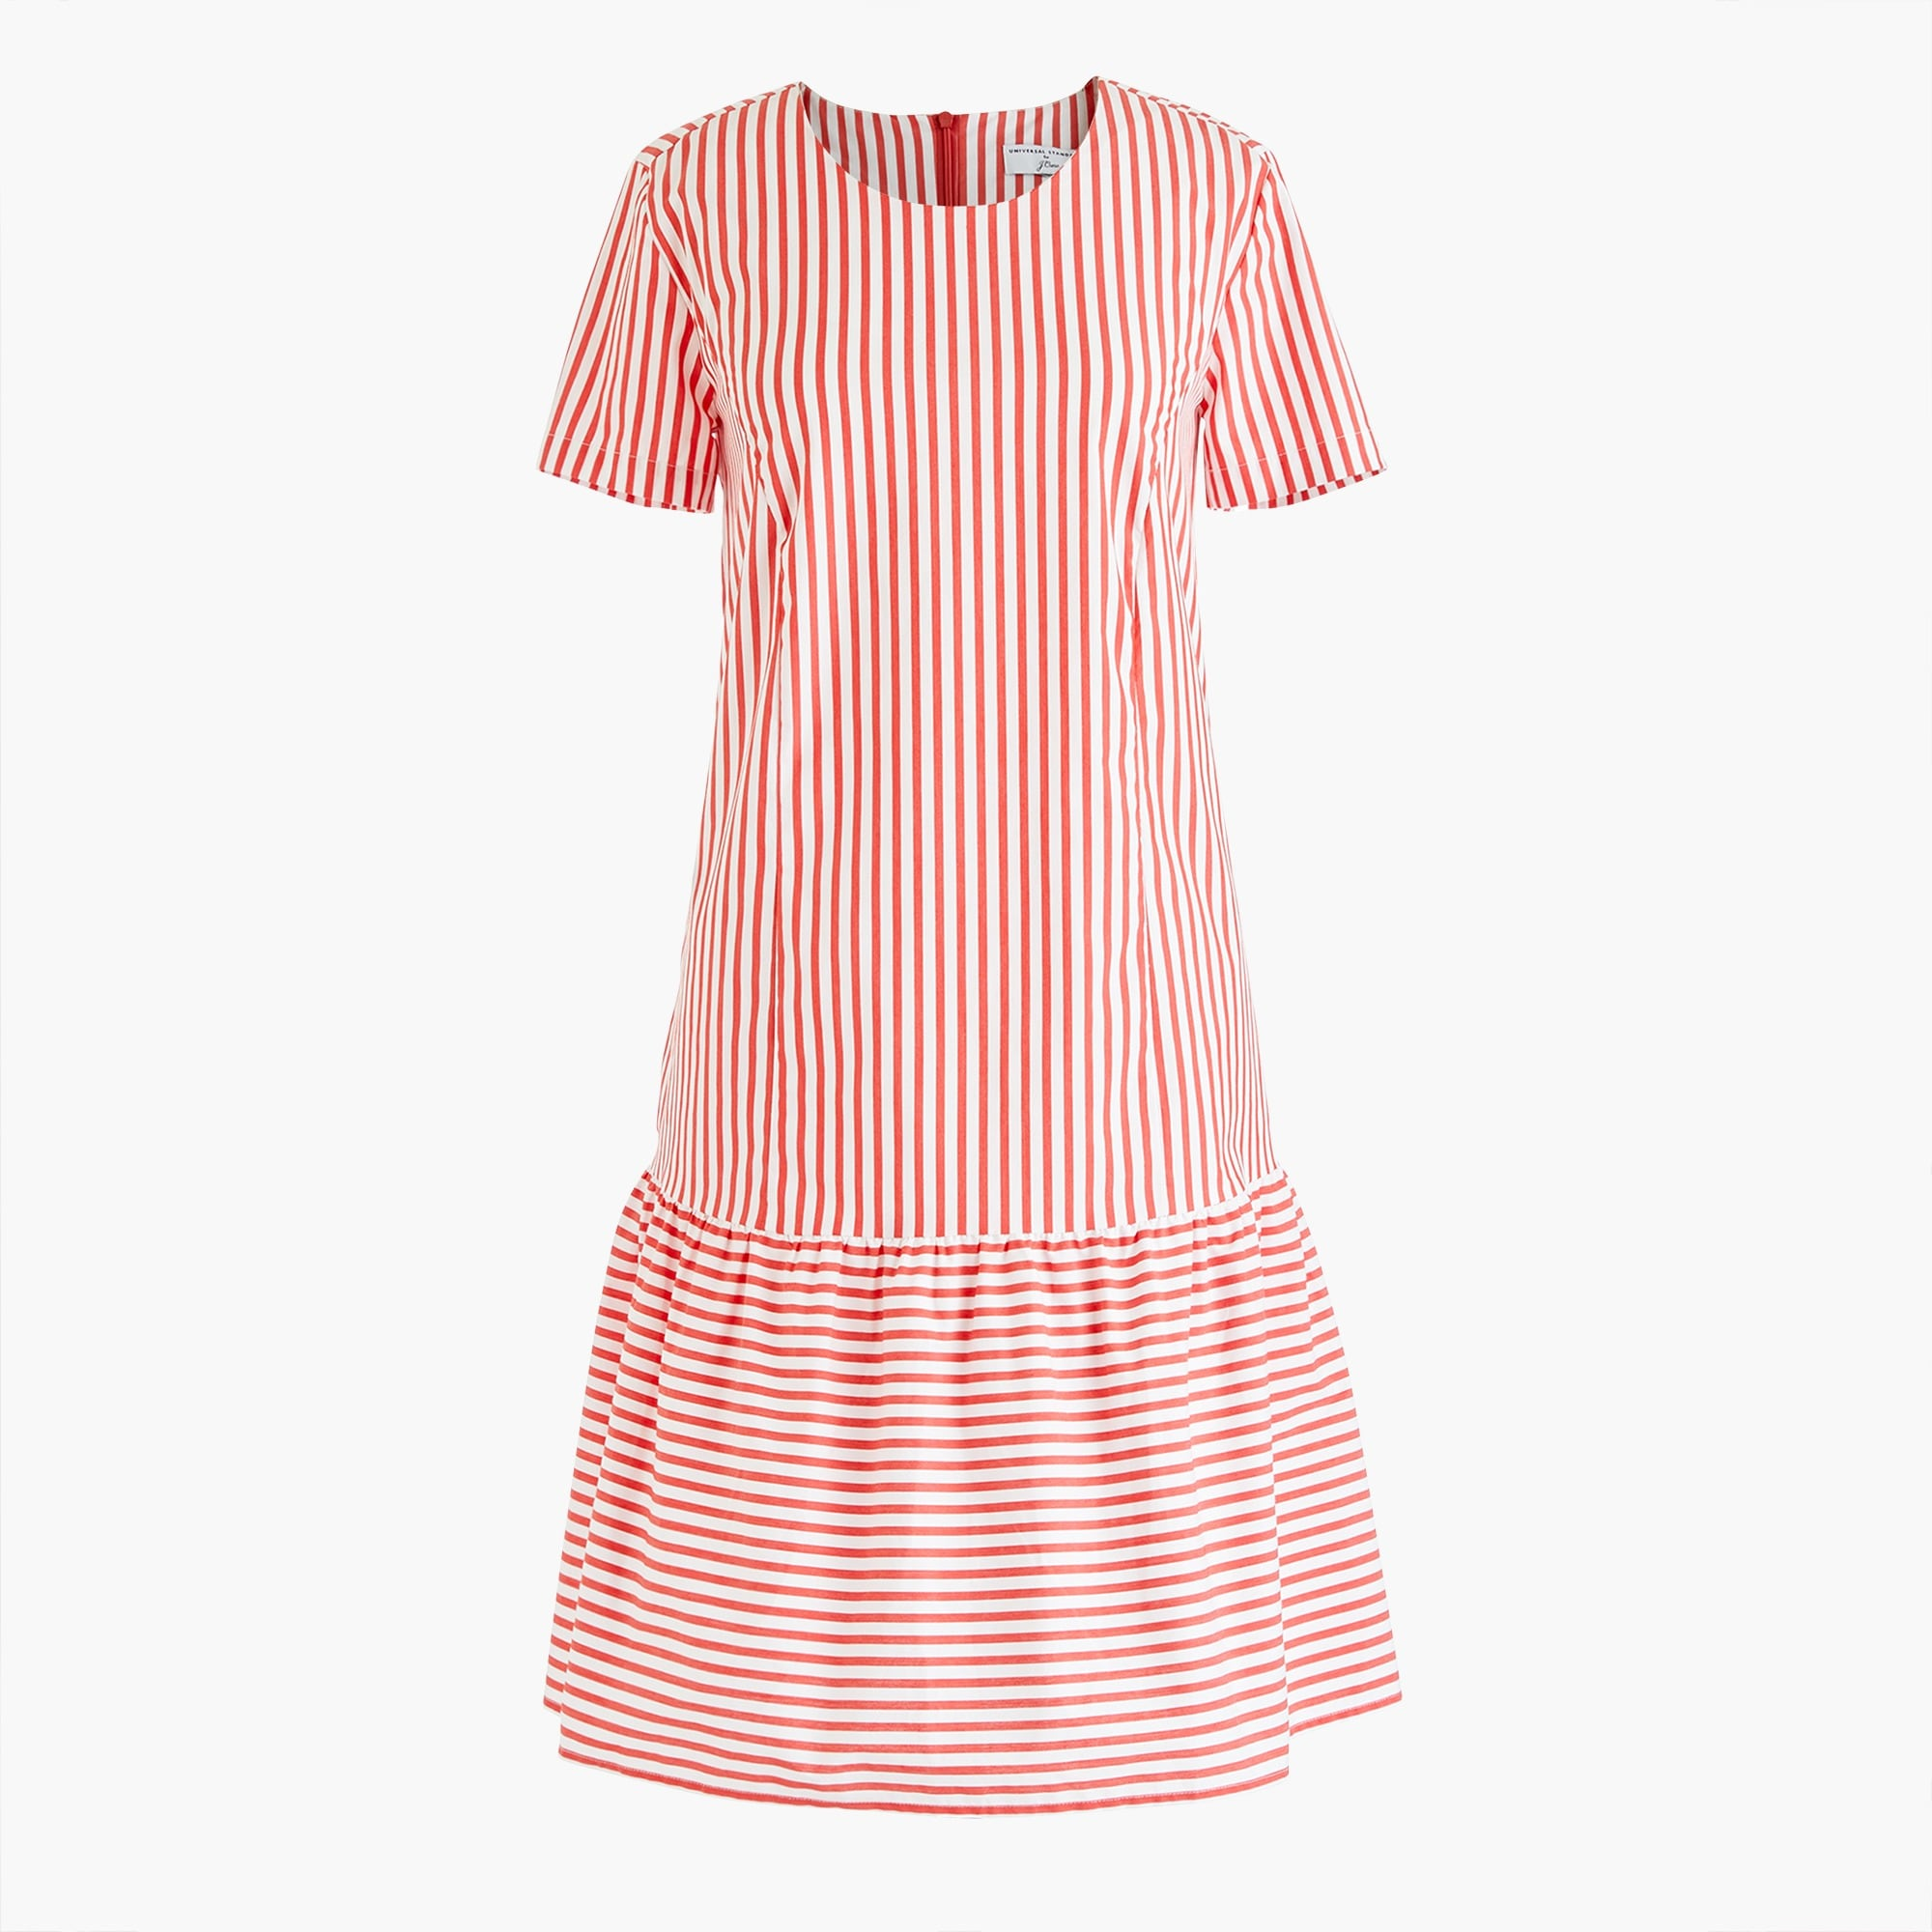 Image 6 for Universal Standard for J.Crew poplin drop-waist dress in stripe